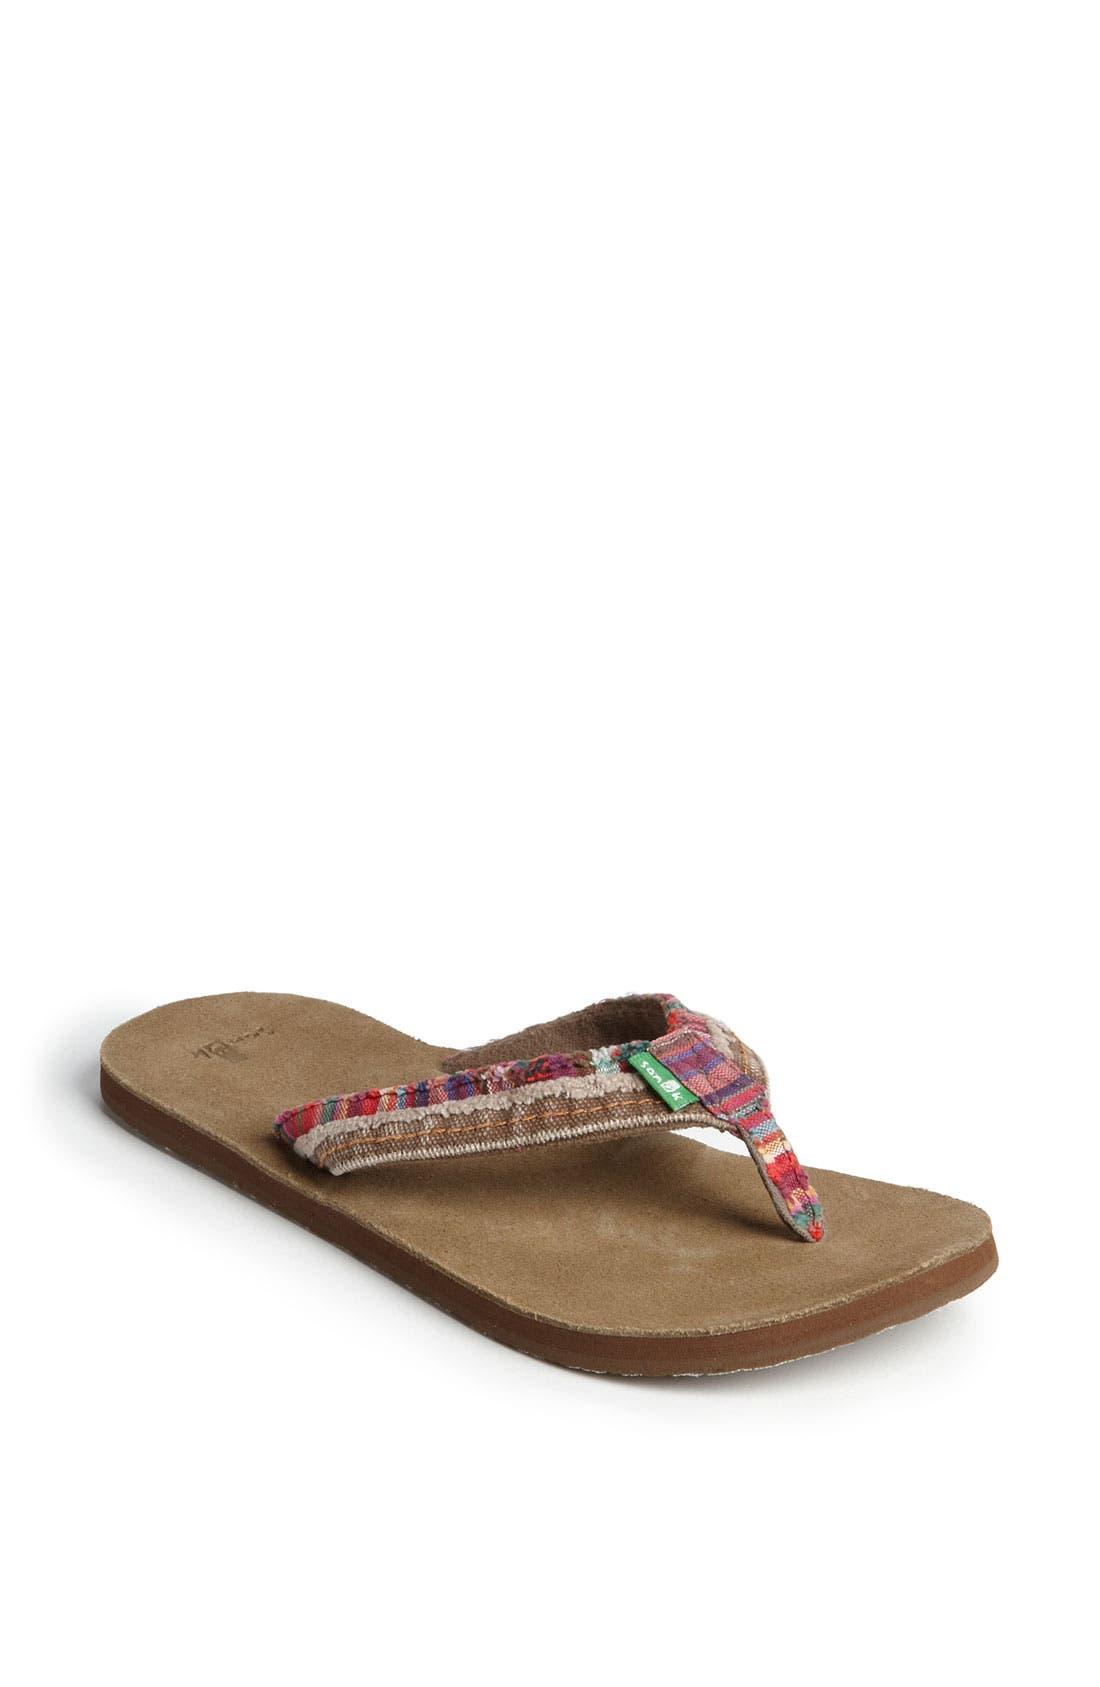 Main Image - Sanuk 'Fraid Too' Flip Flop (Women)